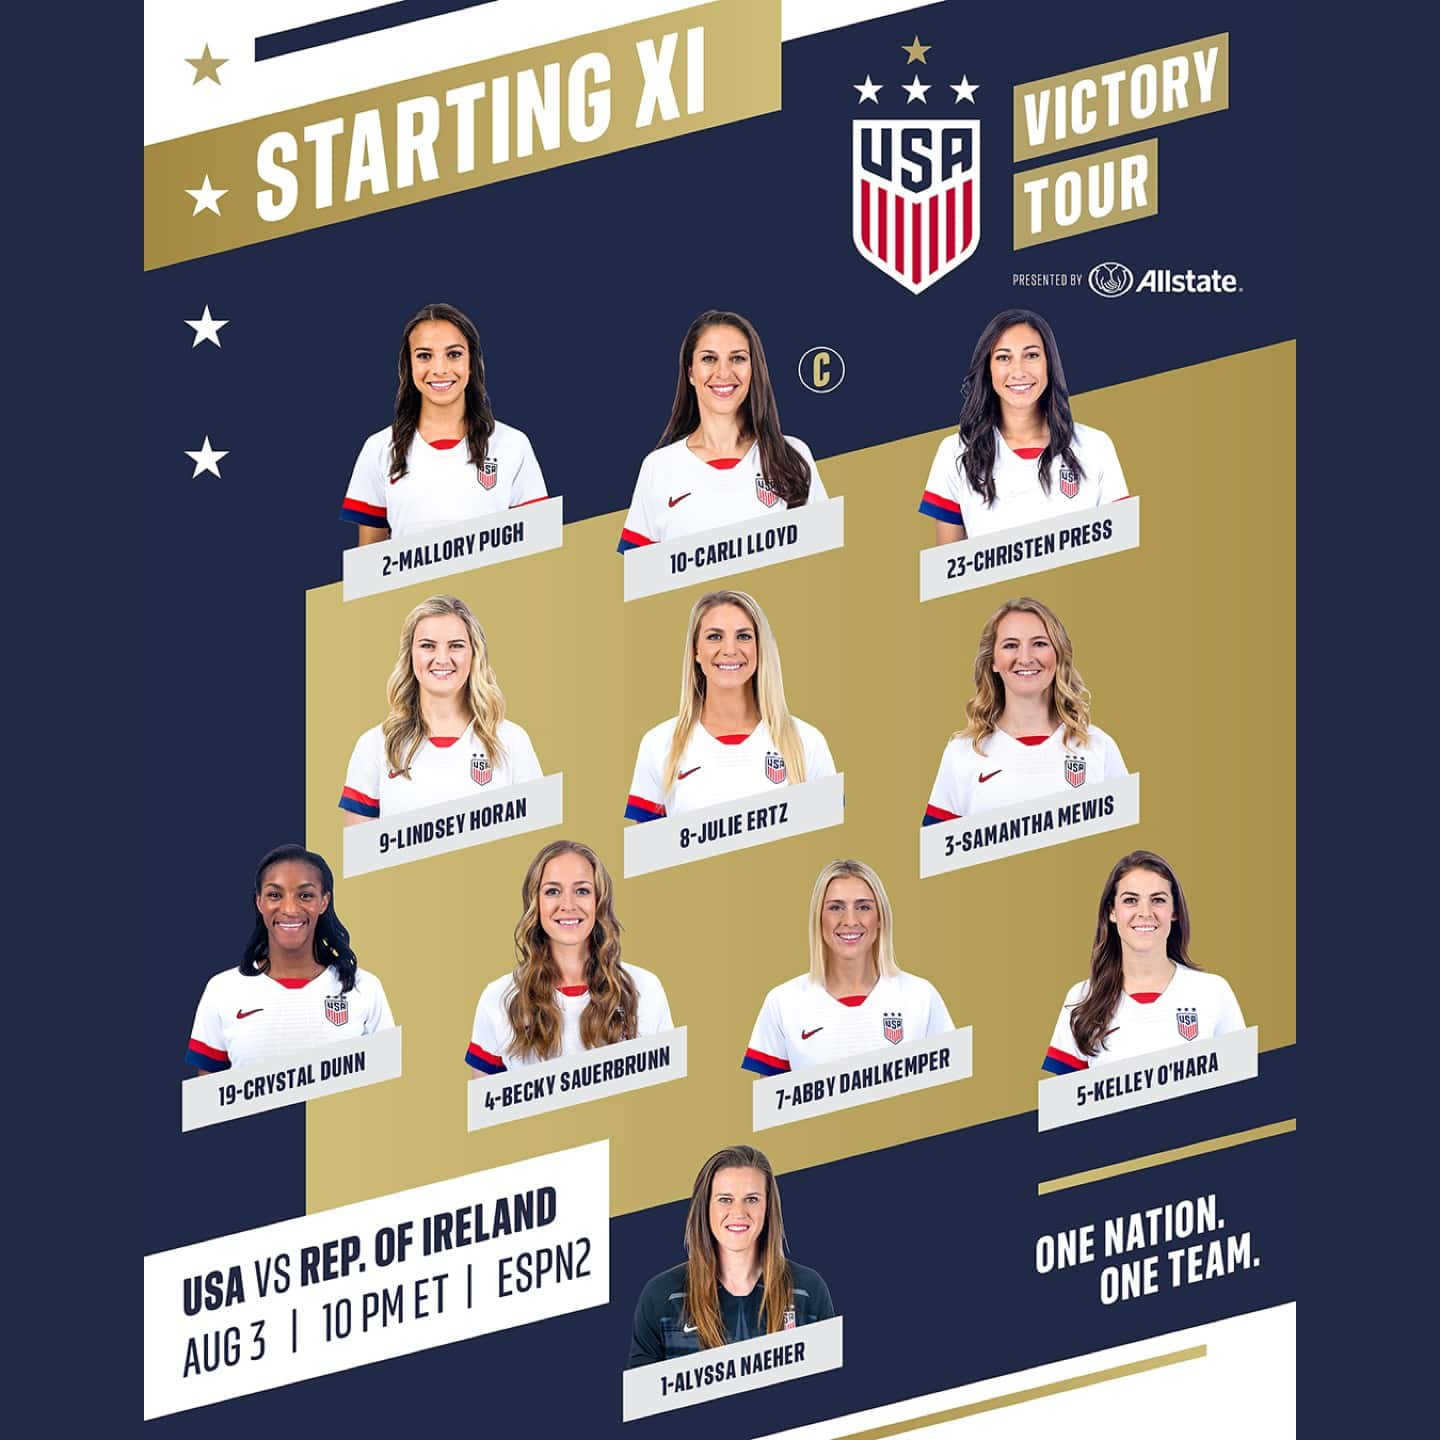 Victory Tour 2019: USA vs. Ireland - Lineup, Schedule, TV Channels & Start Time